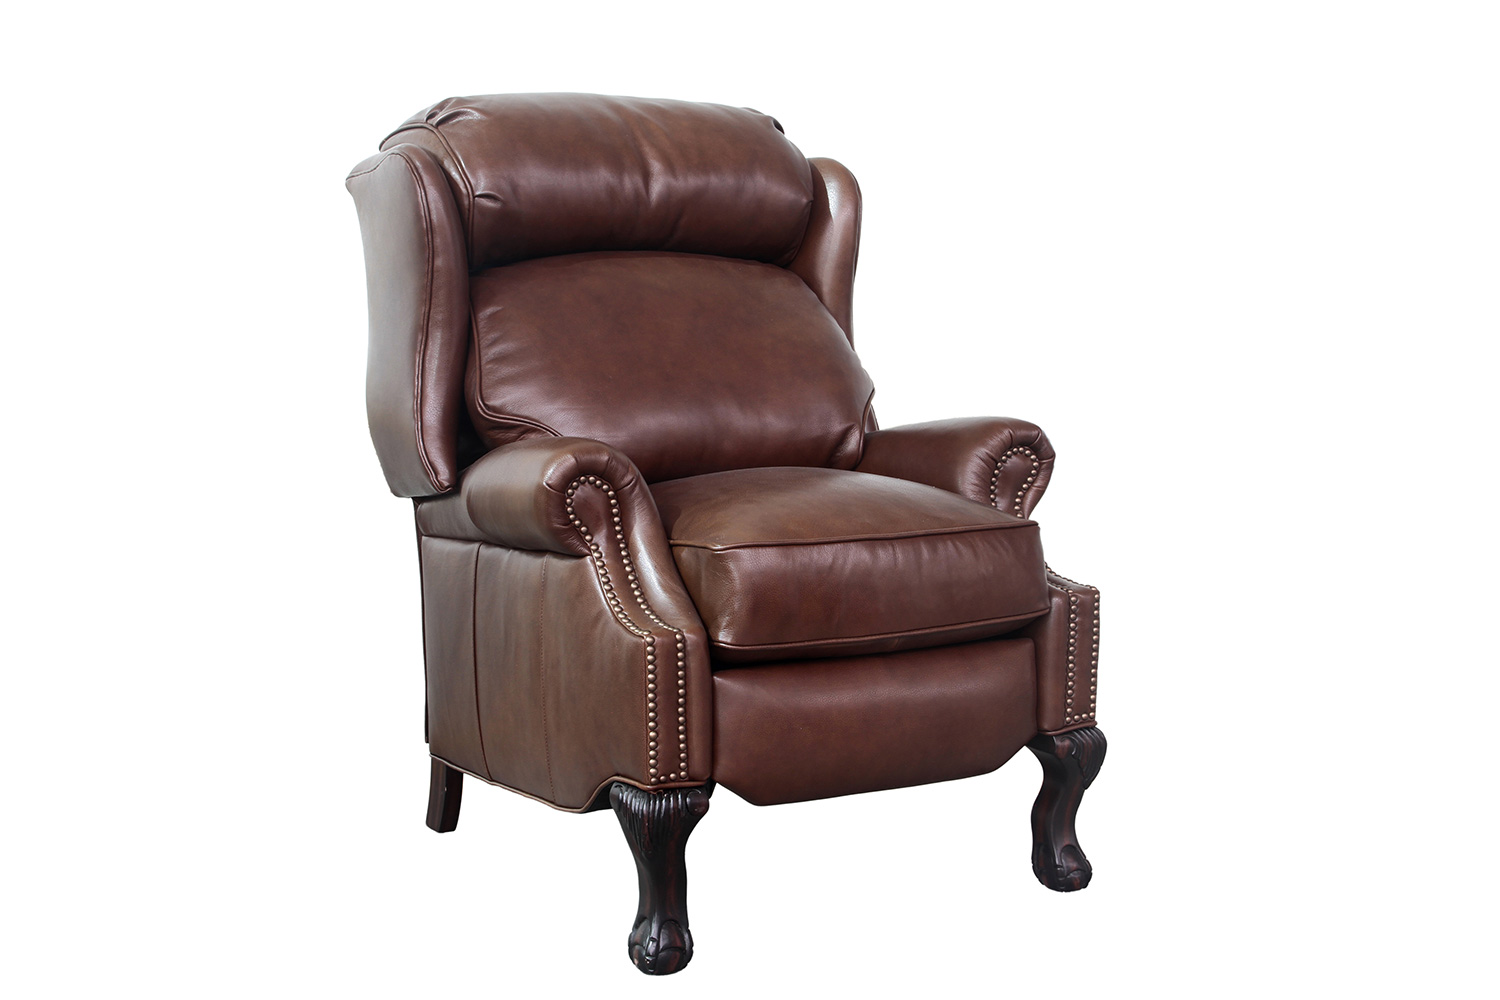 Barcalounger Danbury Recliner Chair - Shoreham Chocolate/All Leather